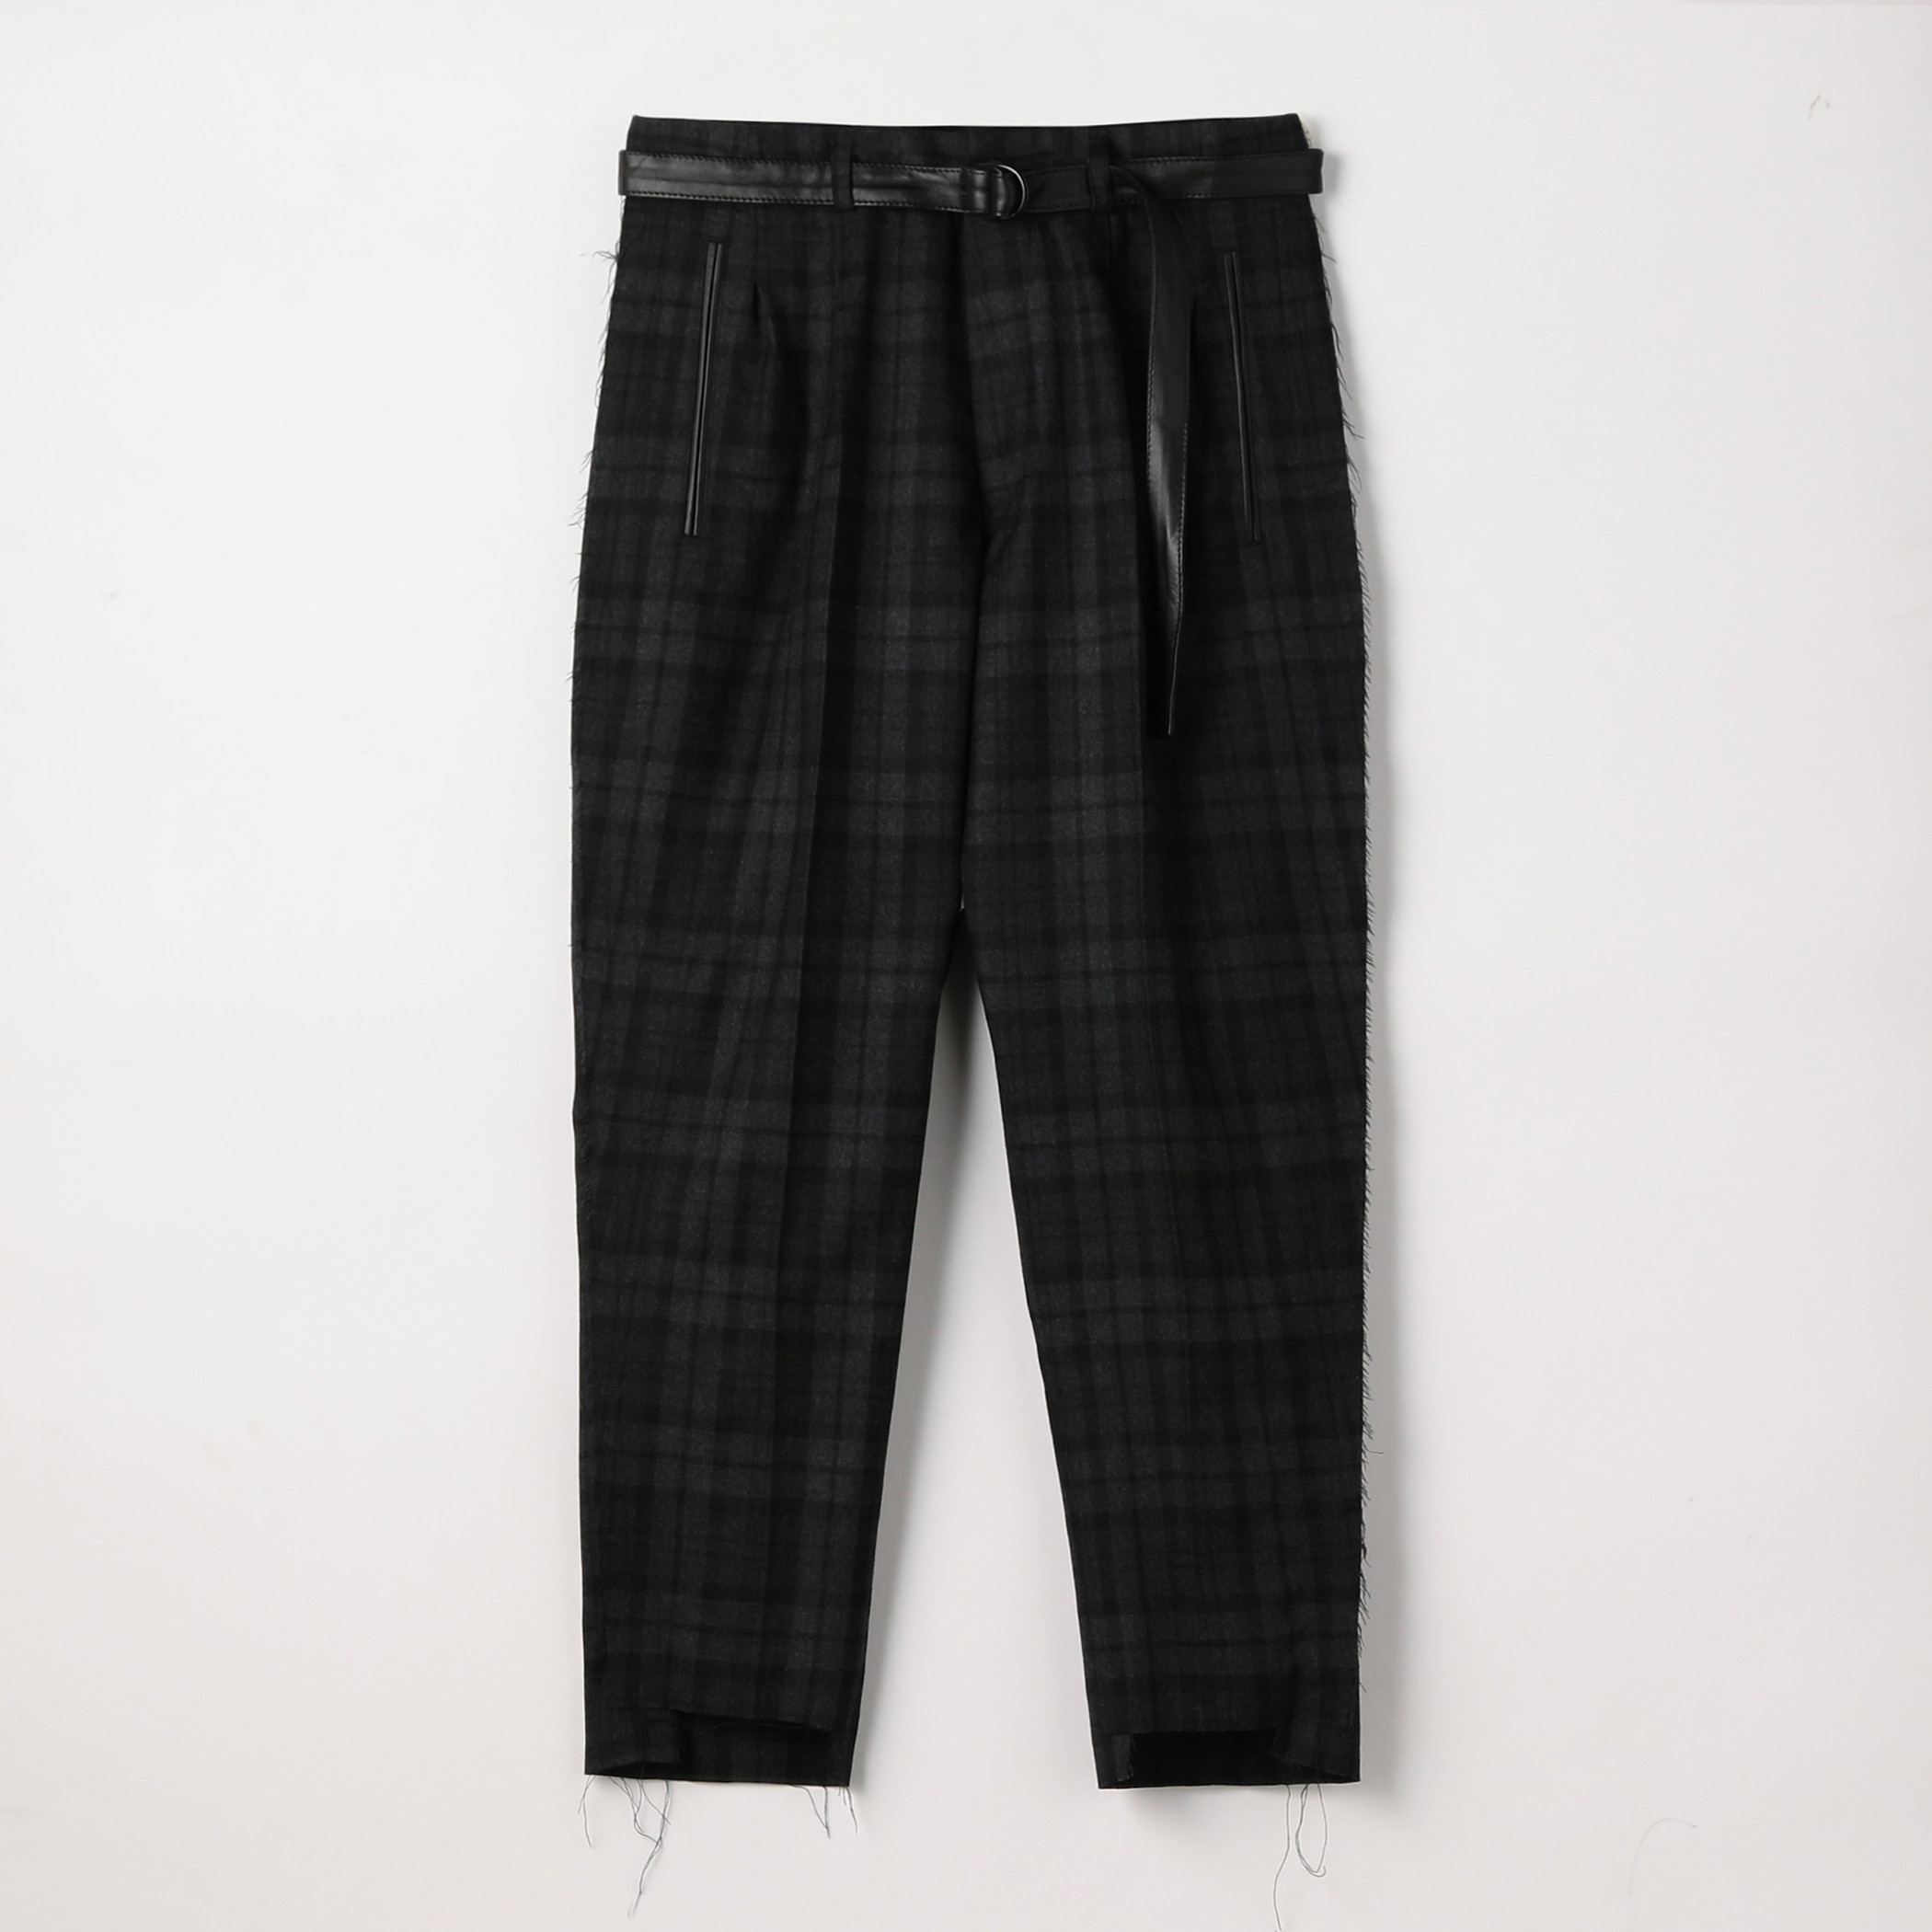 TAILORED TROUSERS 詳細画像 C.Grey 1